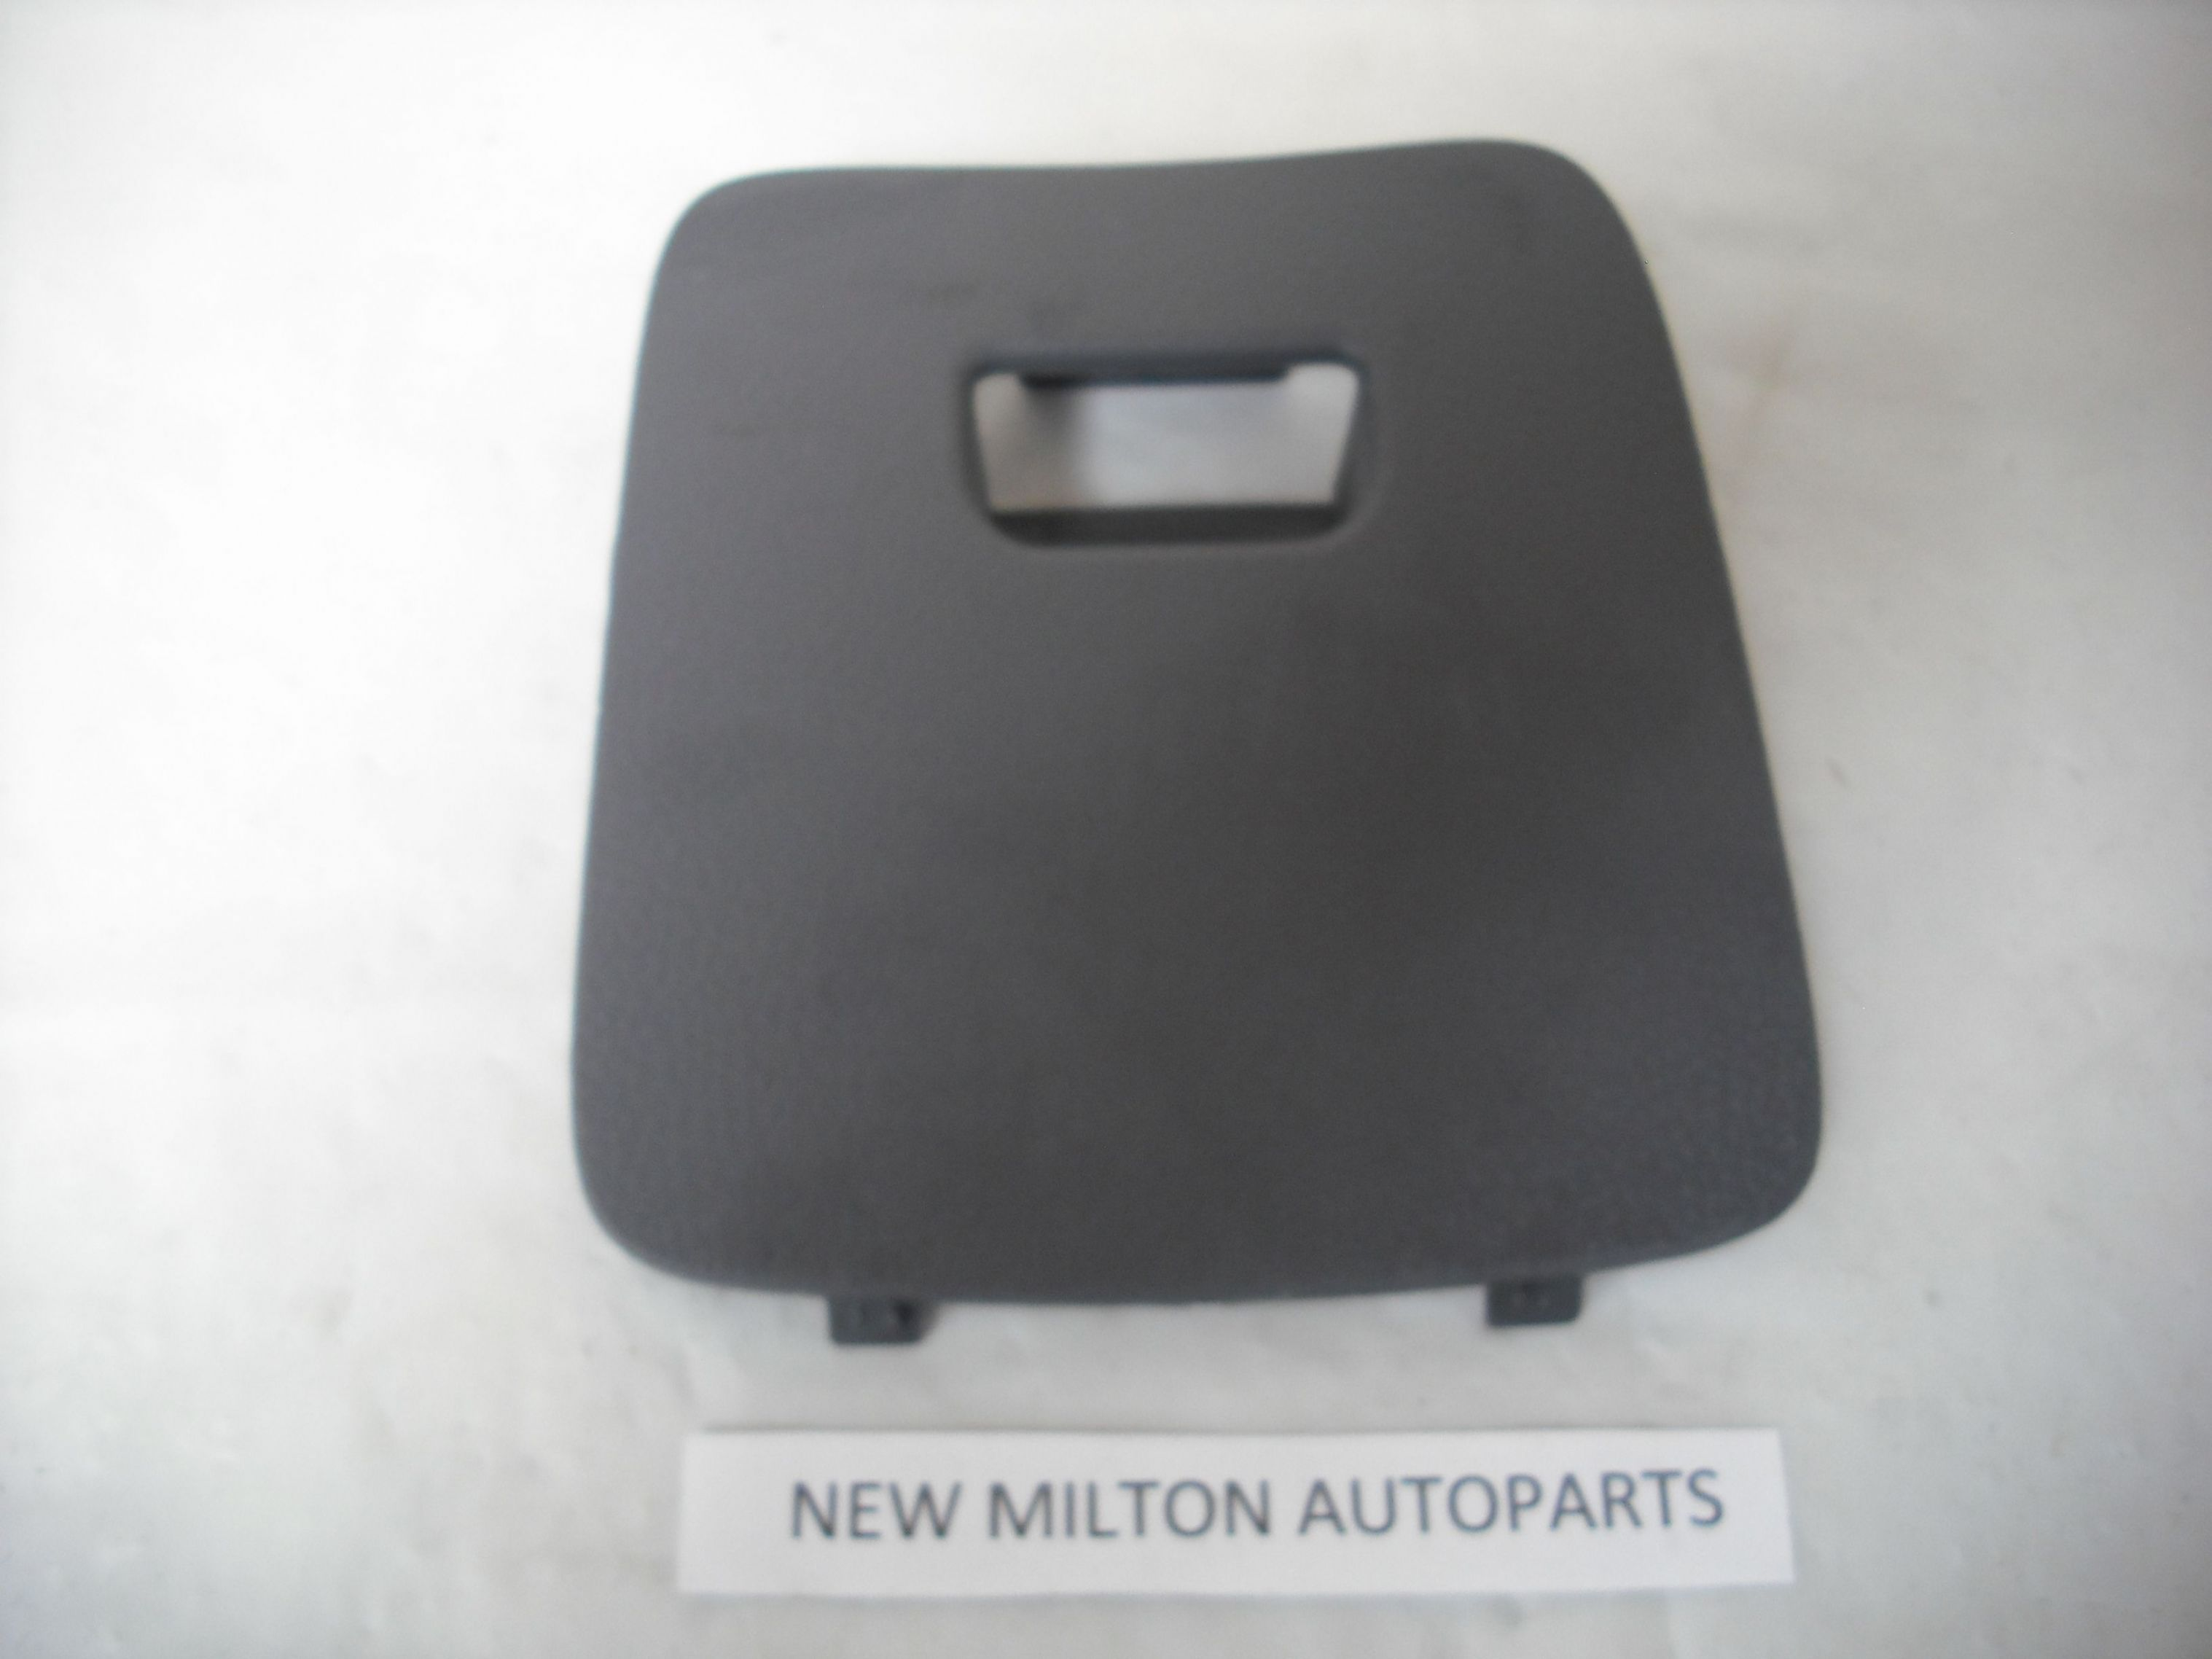 A Genuine Nissan Primera P12 Fuse Box Dash Trim Cover Door Grey Rhd 92 Mazda Mpv Cars Only